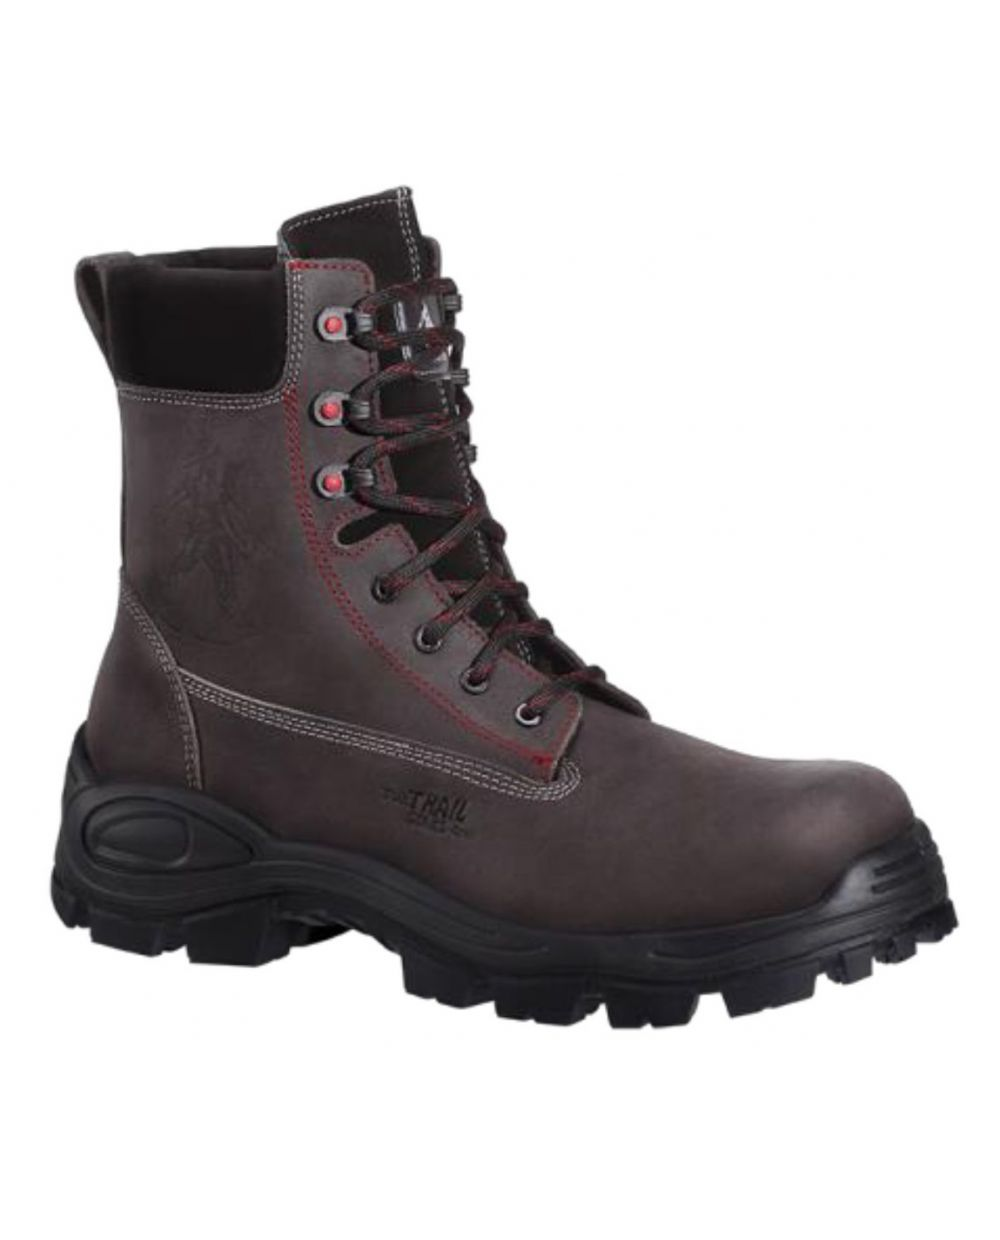 Stelvio S3 Waterproof Combat Boot (Black Sole)